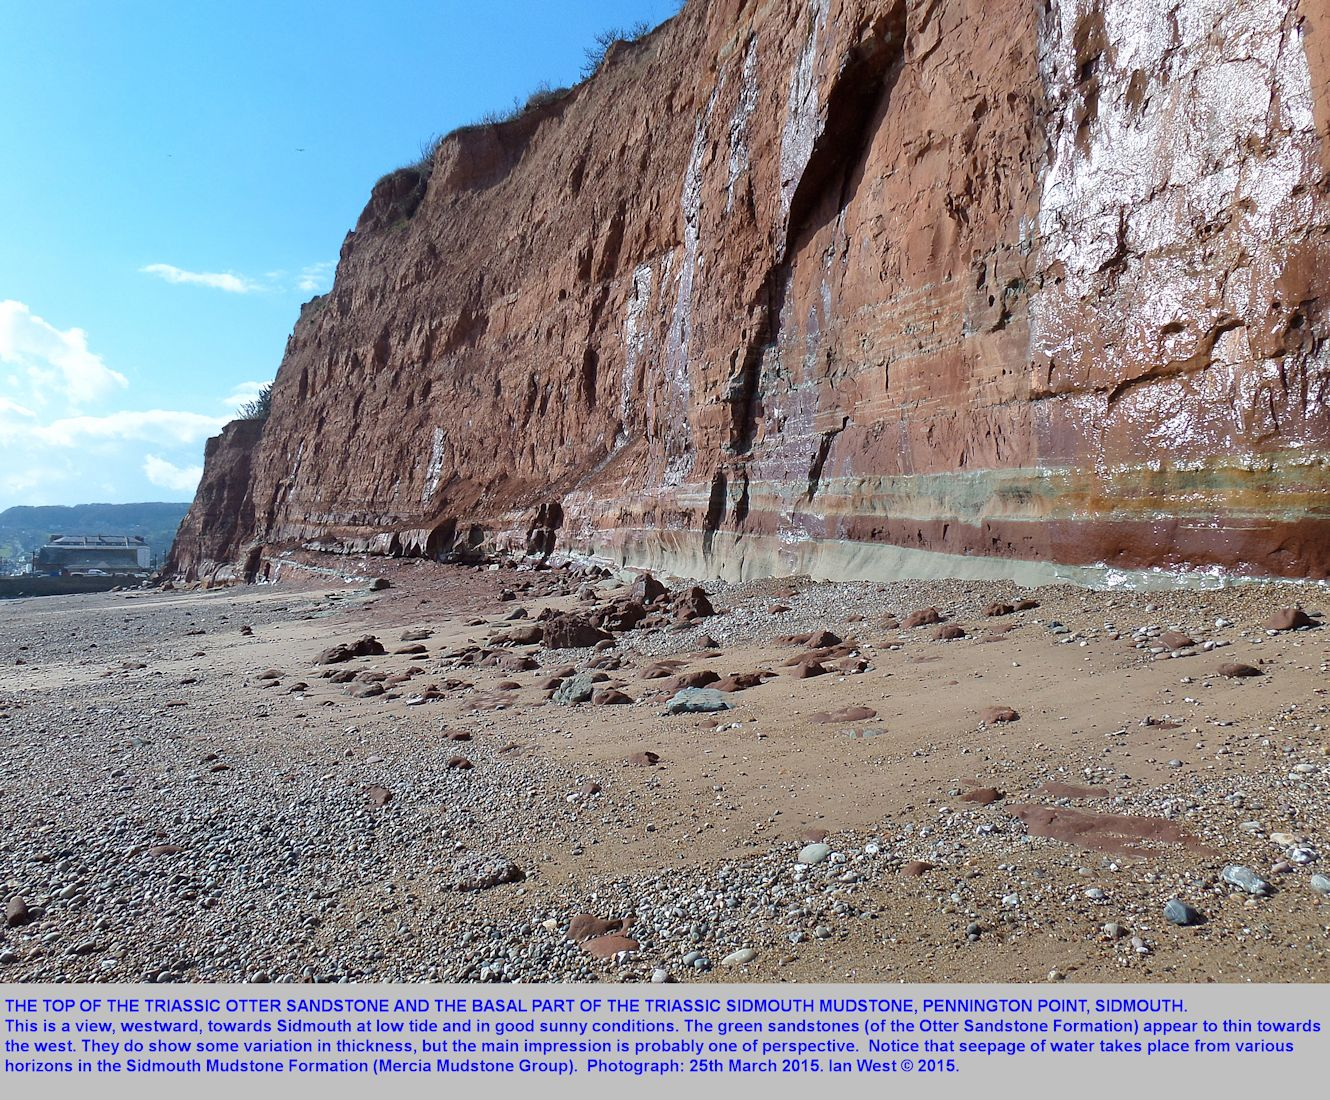 Sandstones in the cliff at Pennington Point, seen when looking westward towards Sidmouth, Devon, by Ian West, 25th March 2015